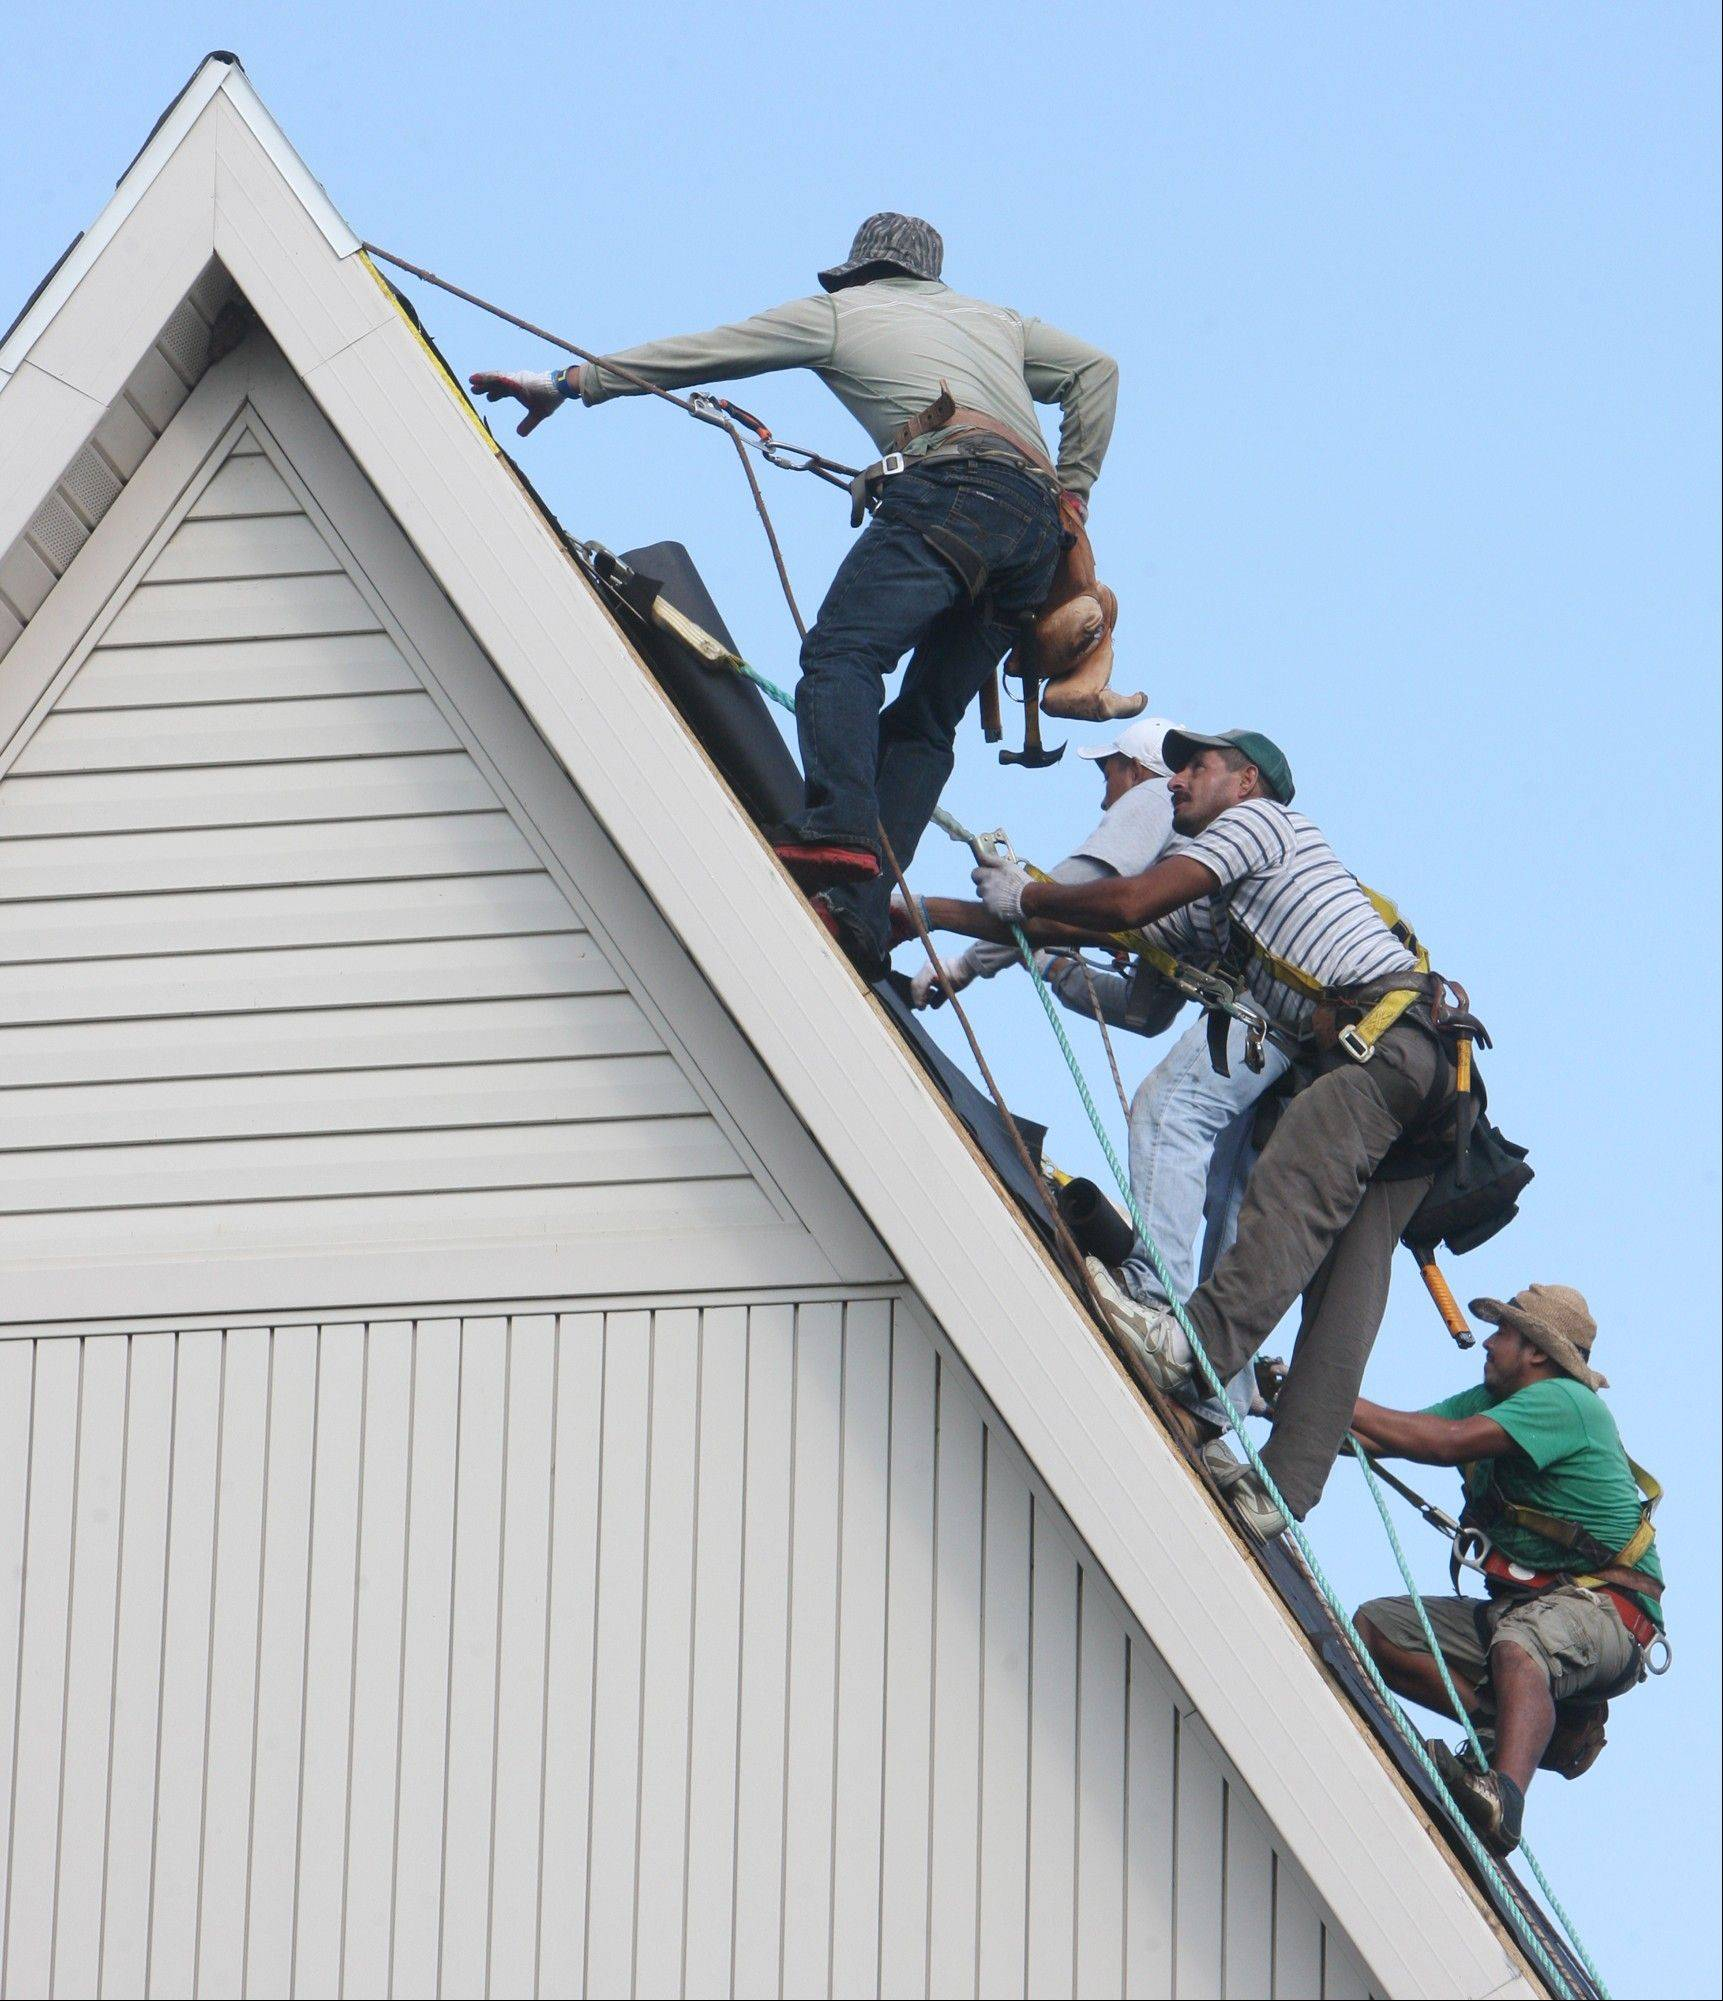 Four roofers were giving a peak performance Thursday as they rappel down from the peak of the First Christian Church, 760 Washington Avenue in Alton.